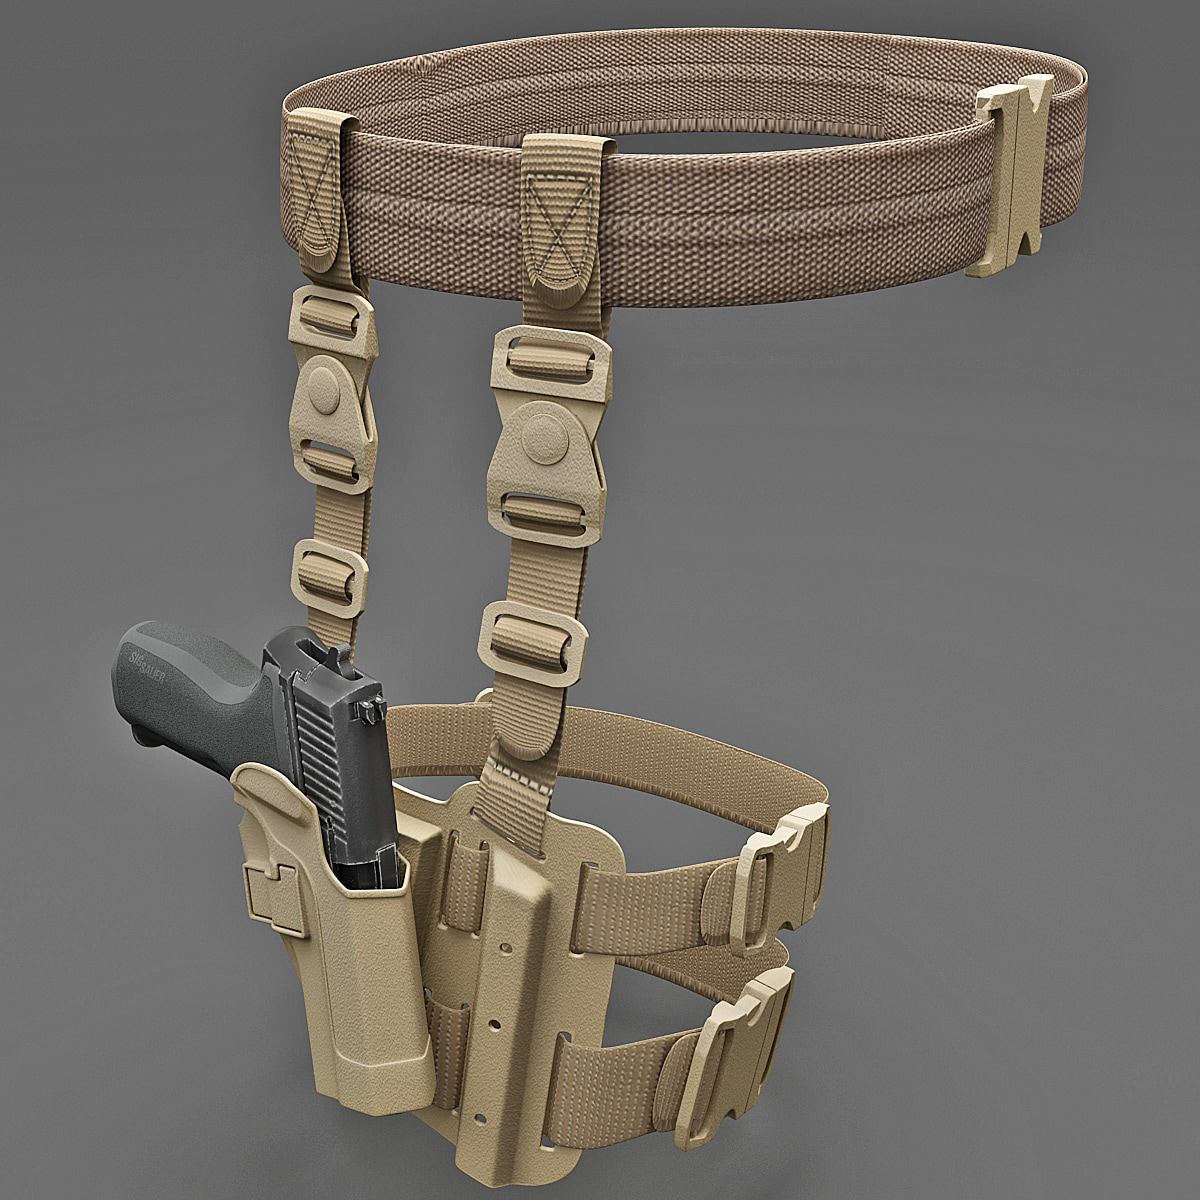 Tactical_SERPA_Pistol_Holster_Collection_001.jpg